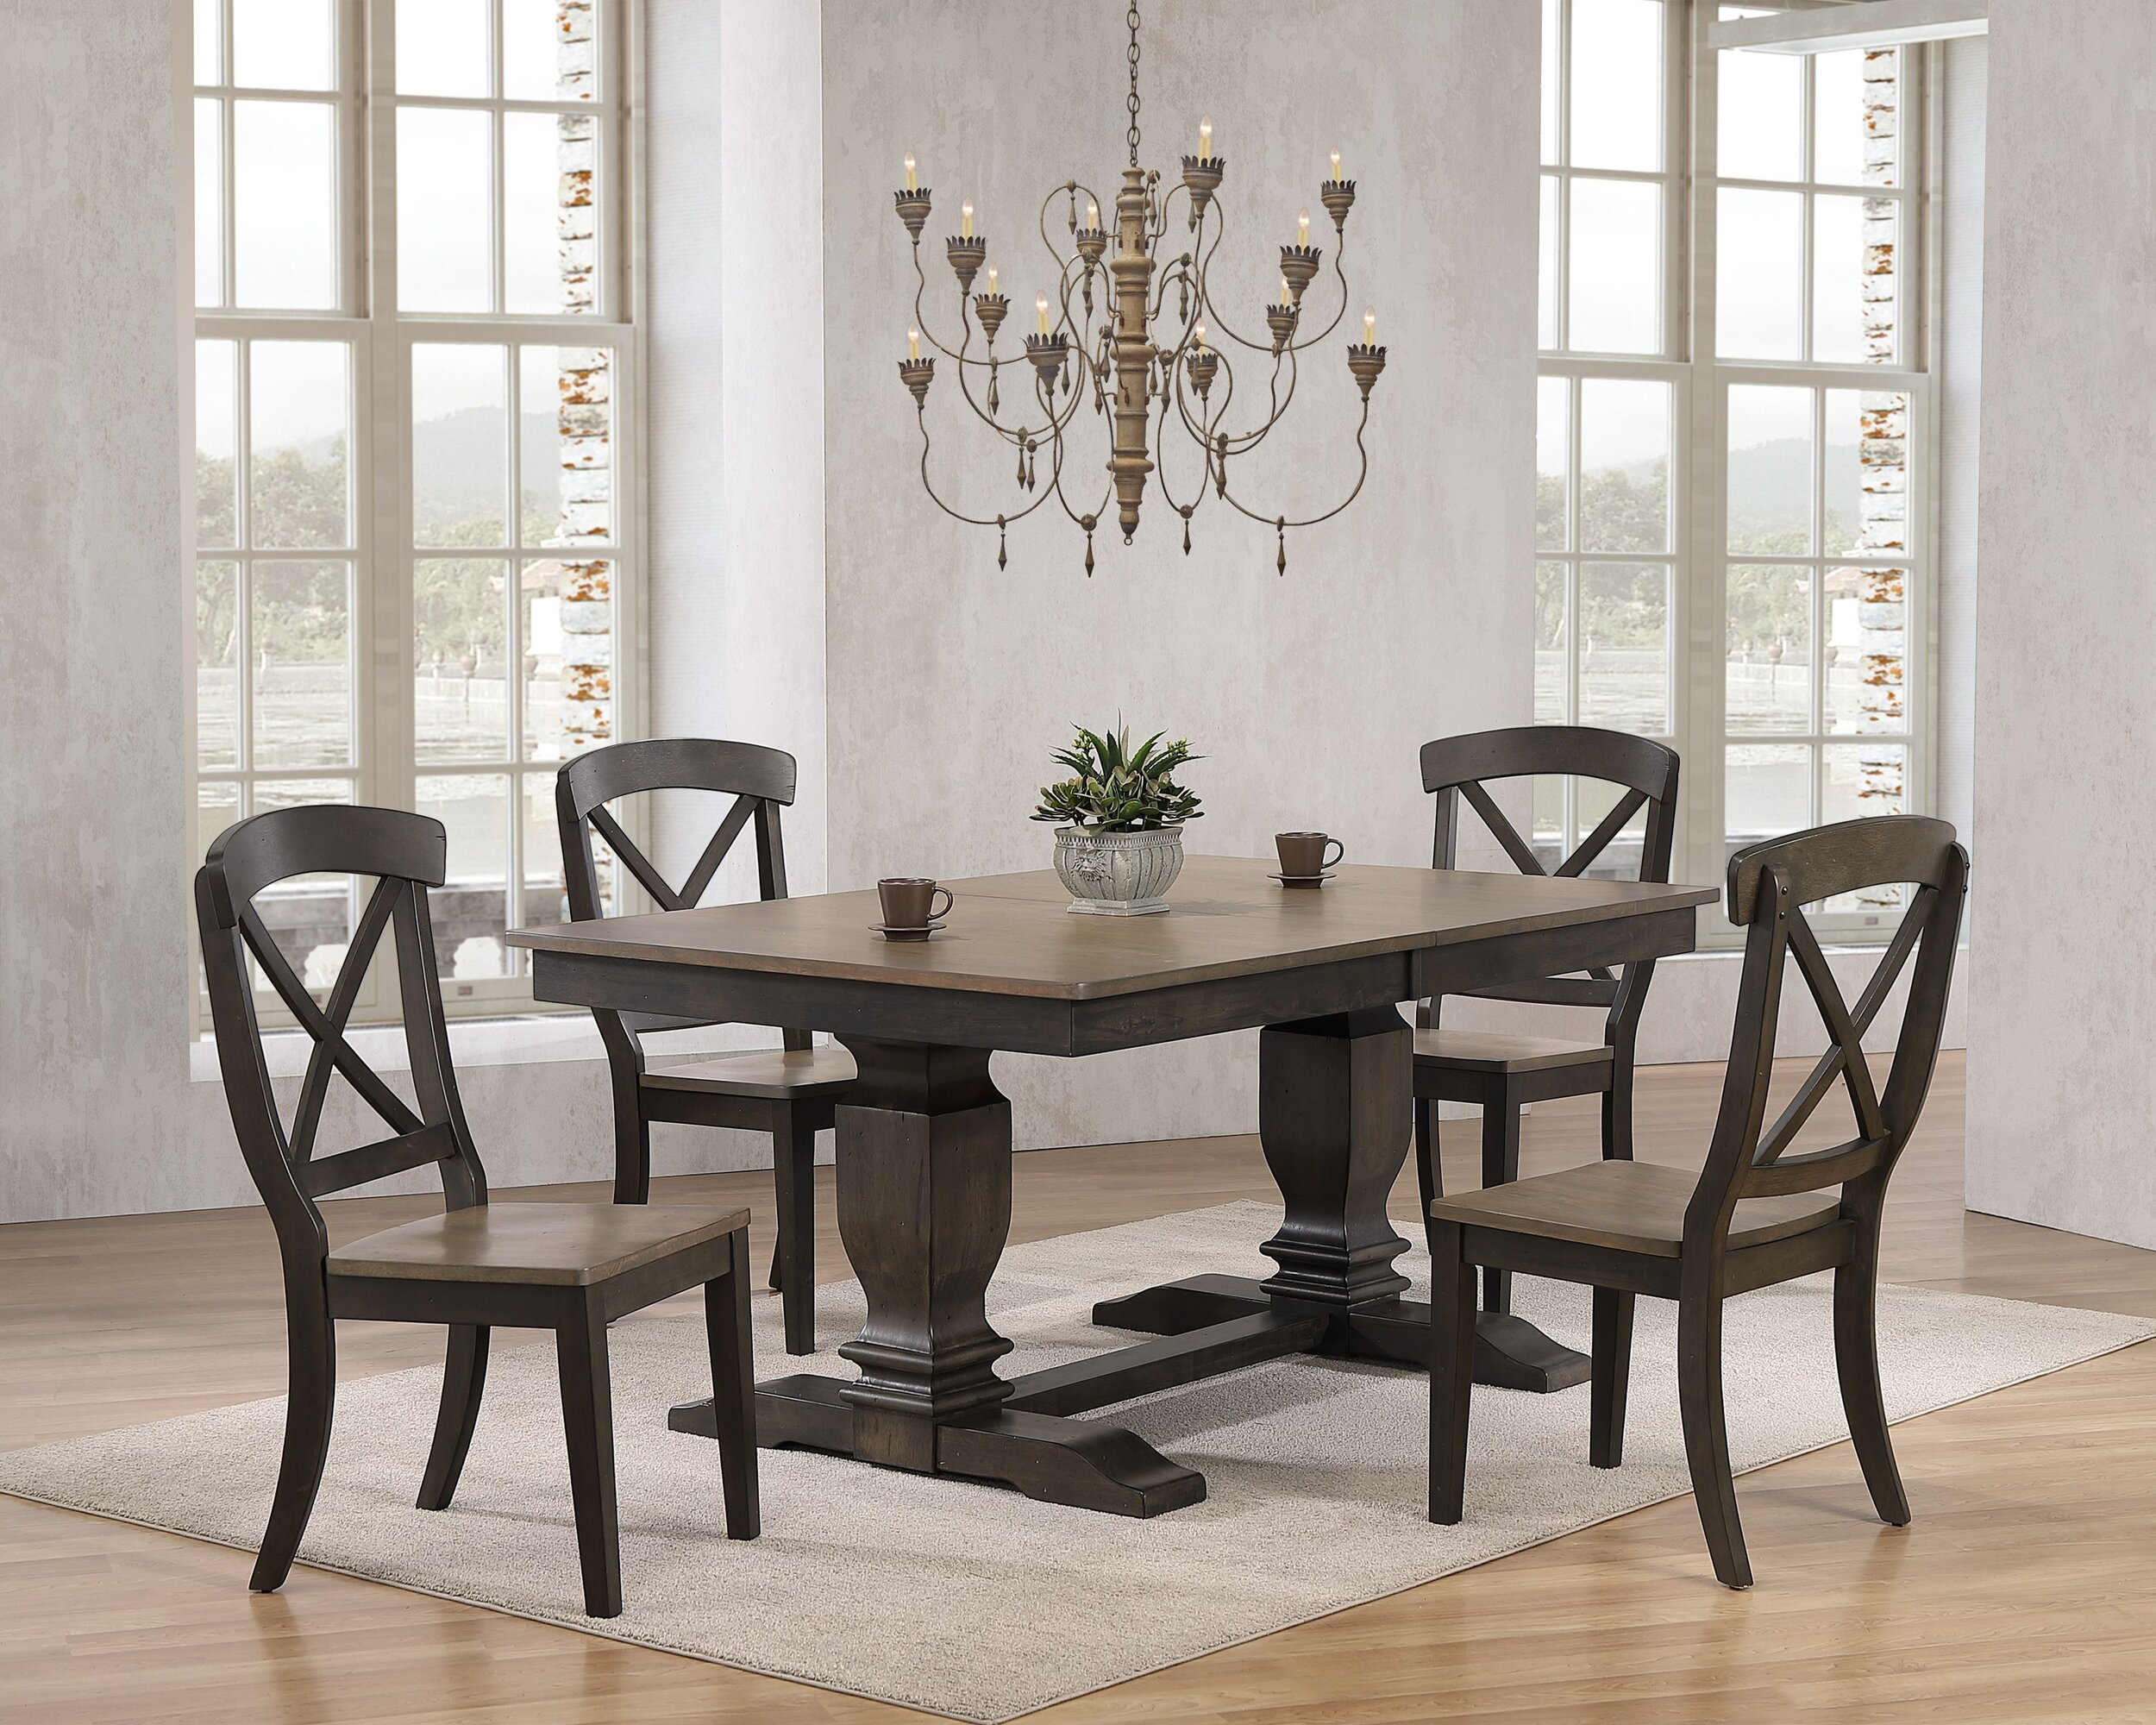 "42""x64""x82"" Double Pedestal Transitional Antique Grey Stone Black Stone X-Back 5-Piece Dining Set"